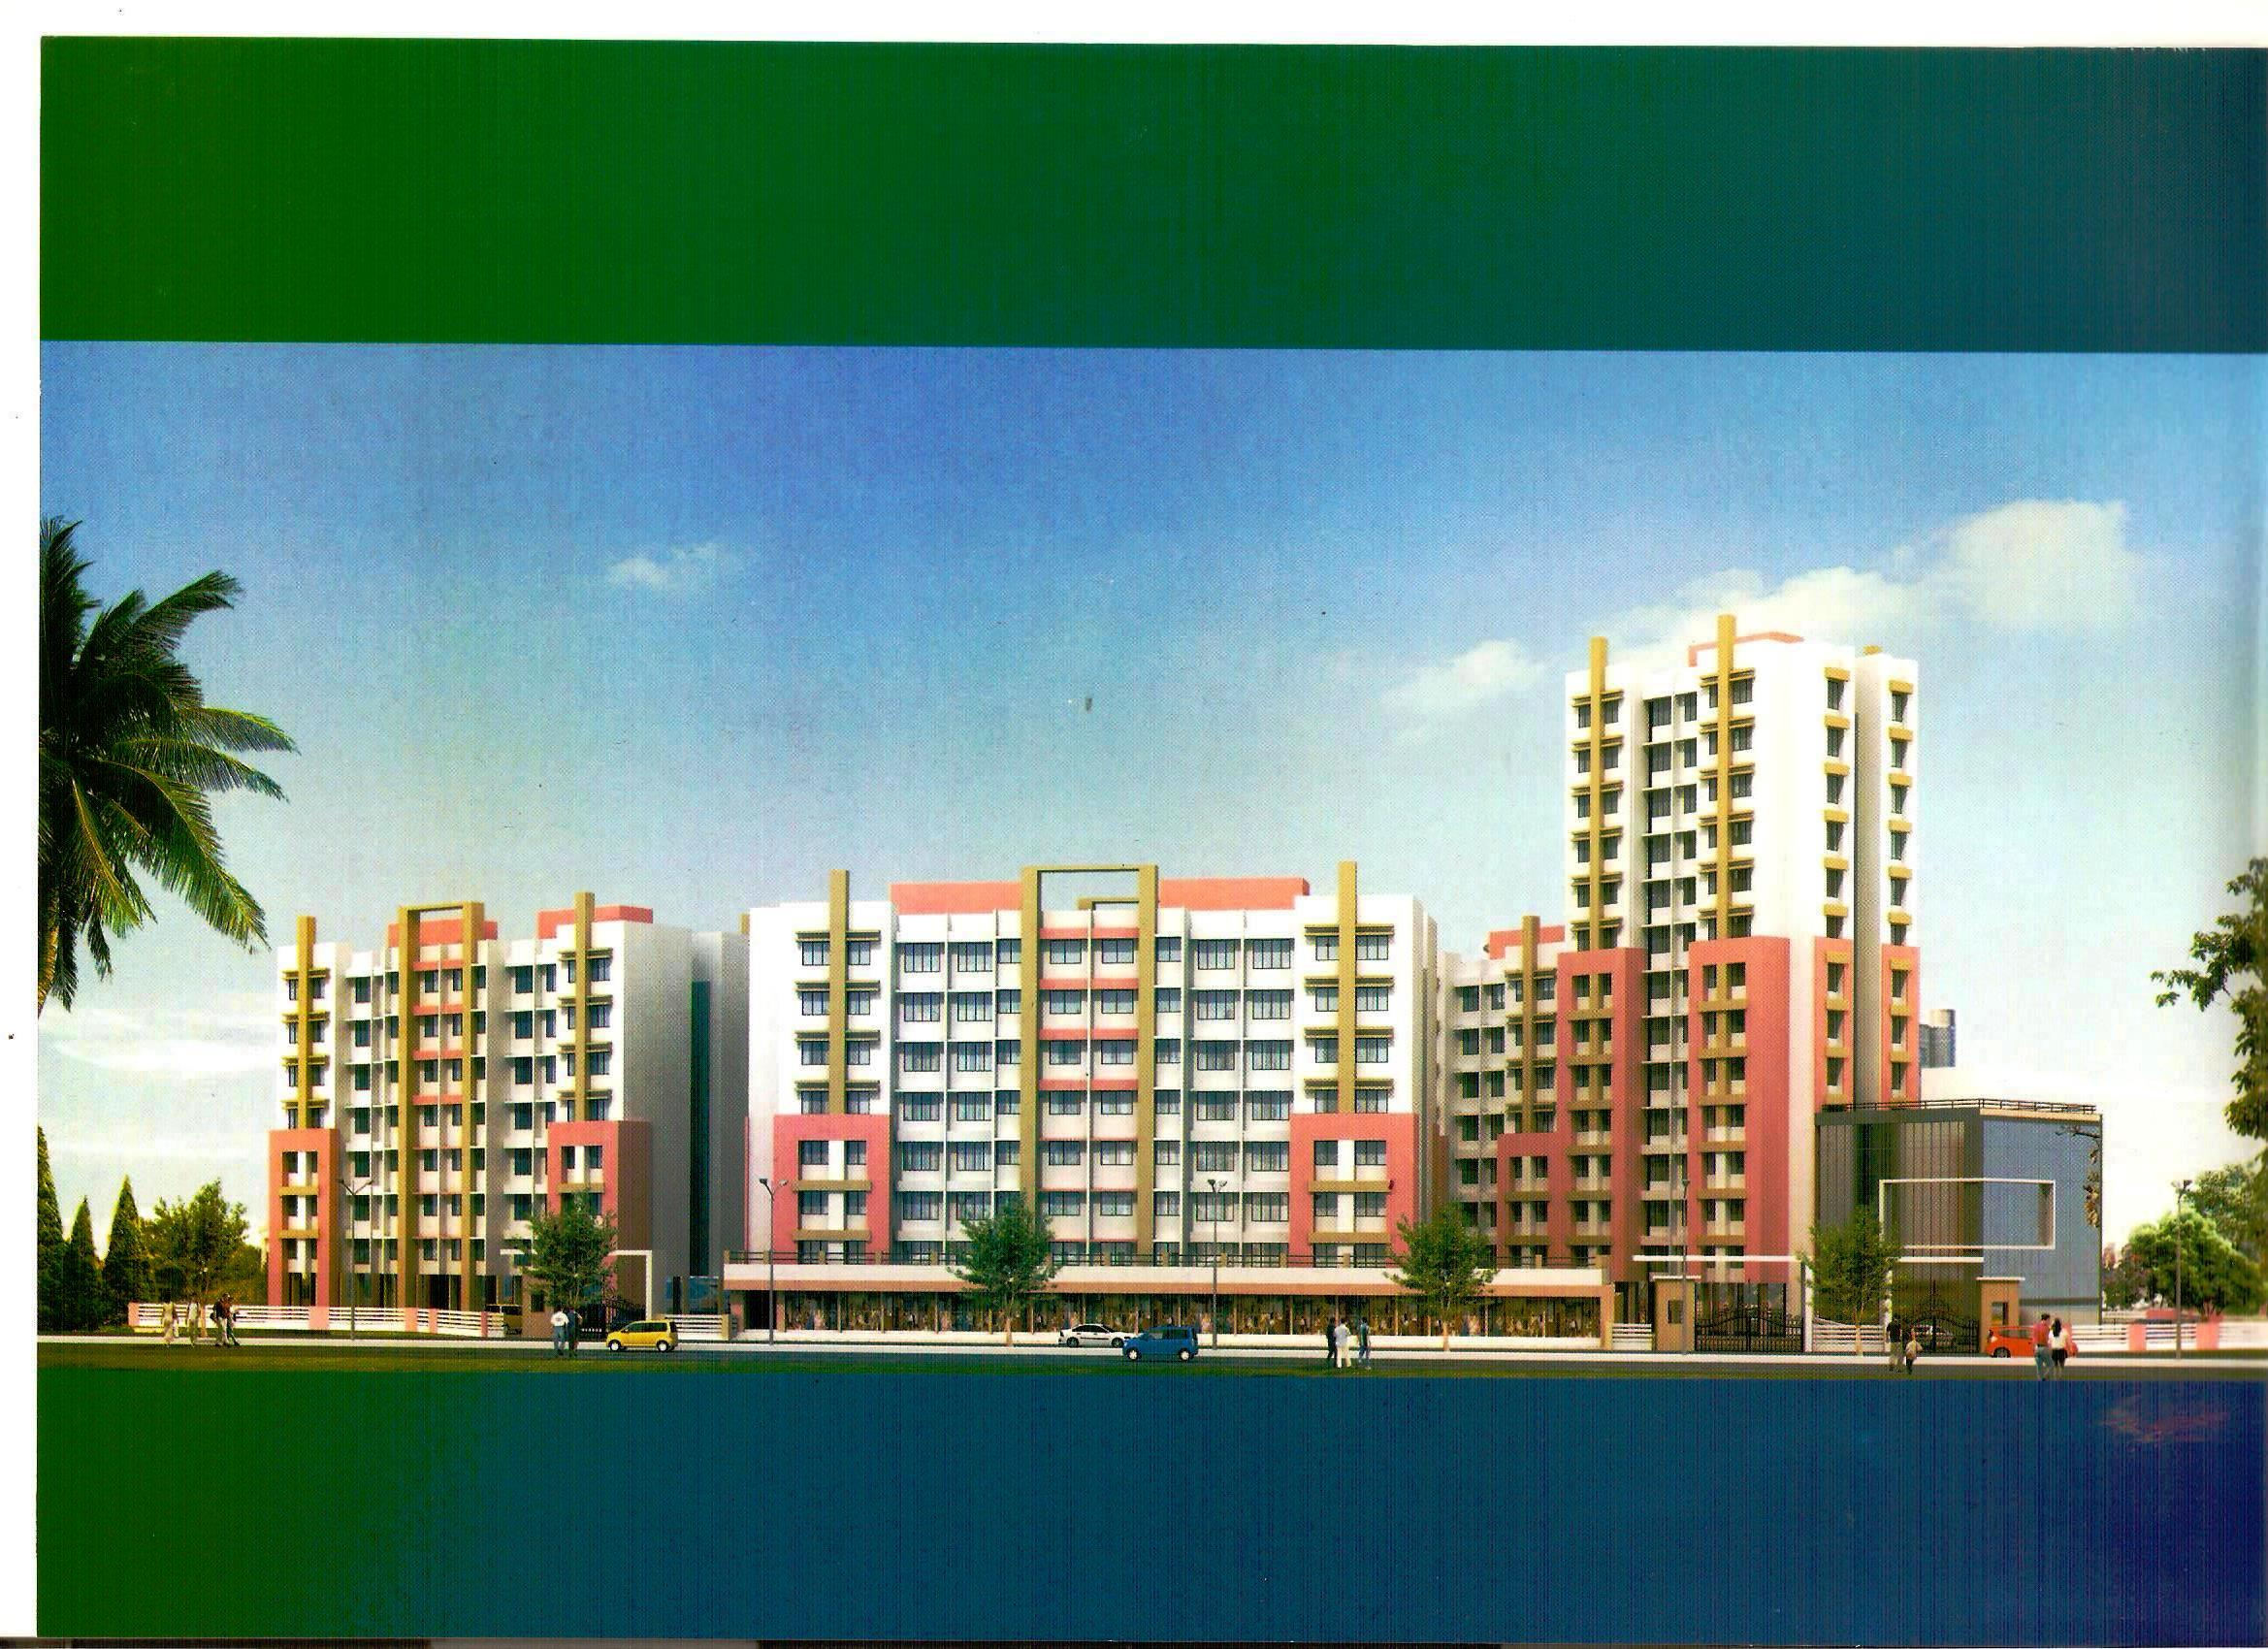 Residential Multistorey Apartment for Sale in Khardi Pada,Dawdle Diva Shill Road , Diva-West, Mumbai